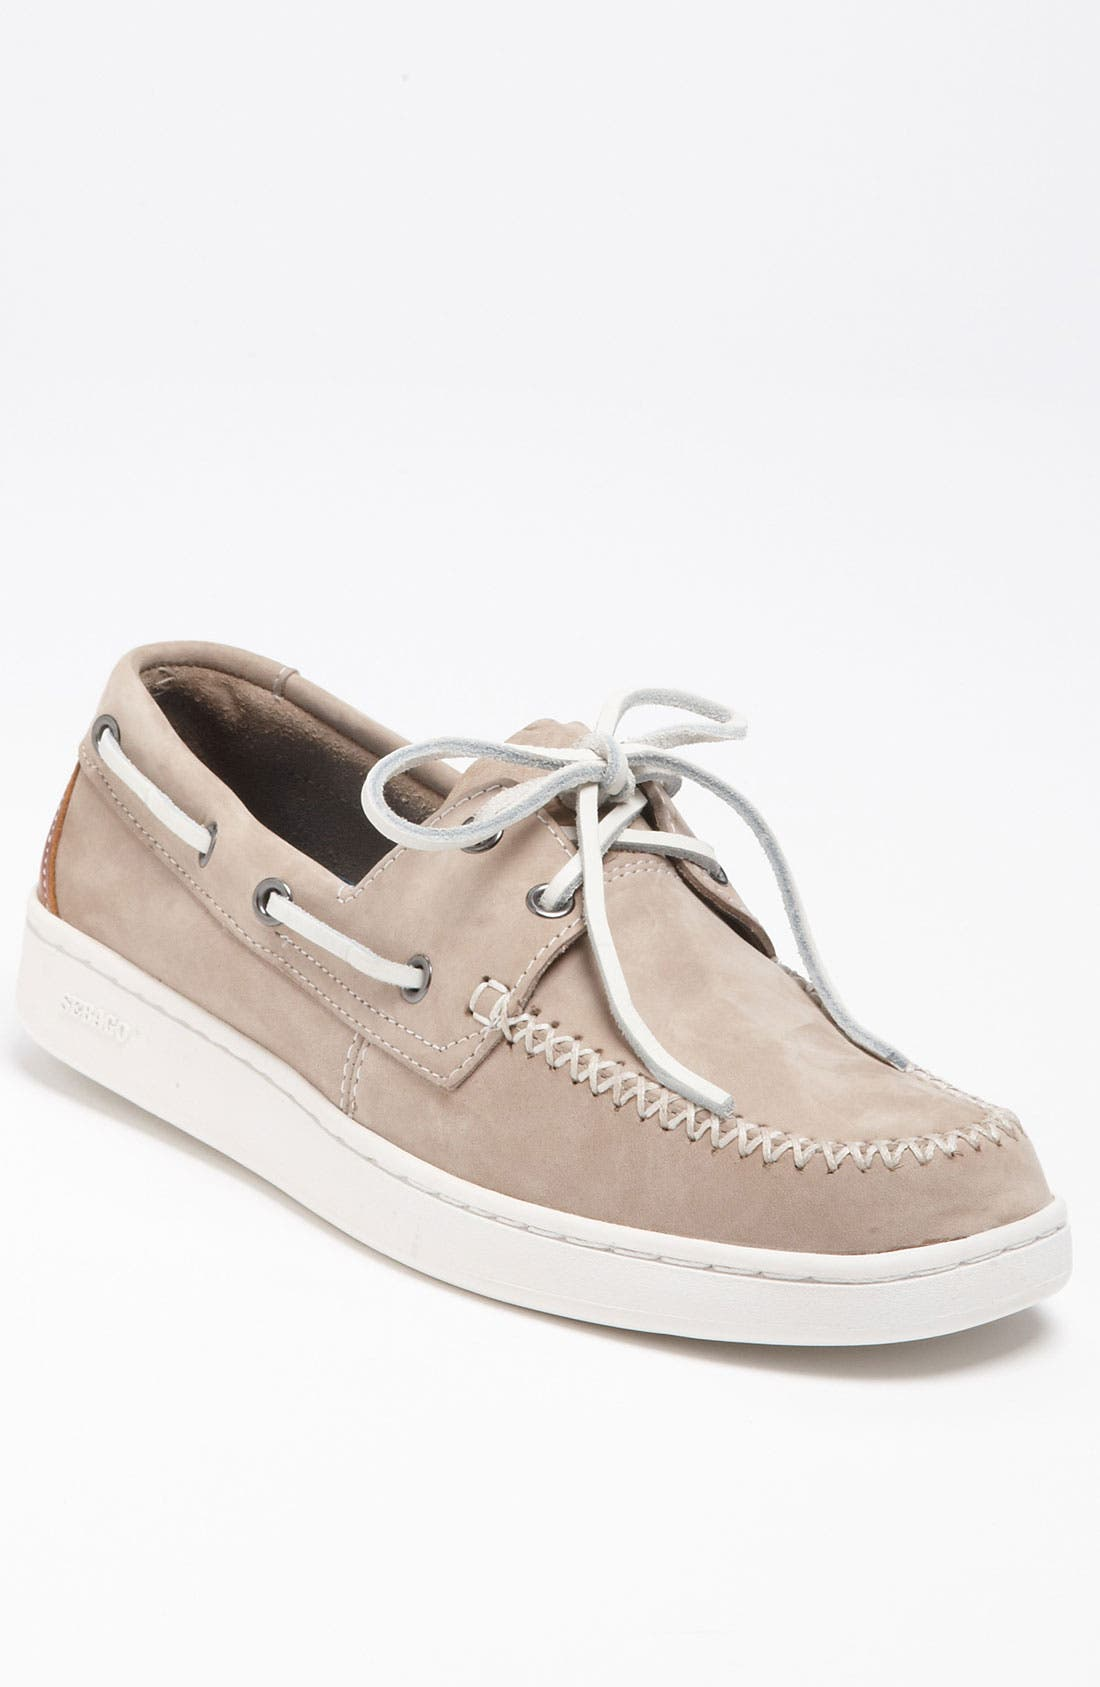 Alternate Image 1 Selected - Sebago 'Wentworth' Boat Shoe